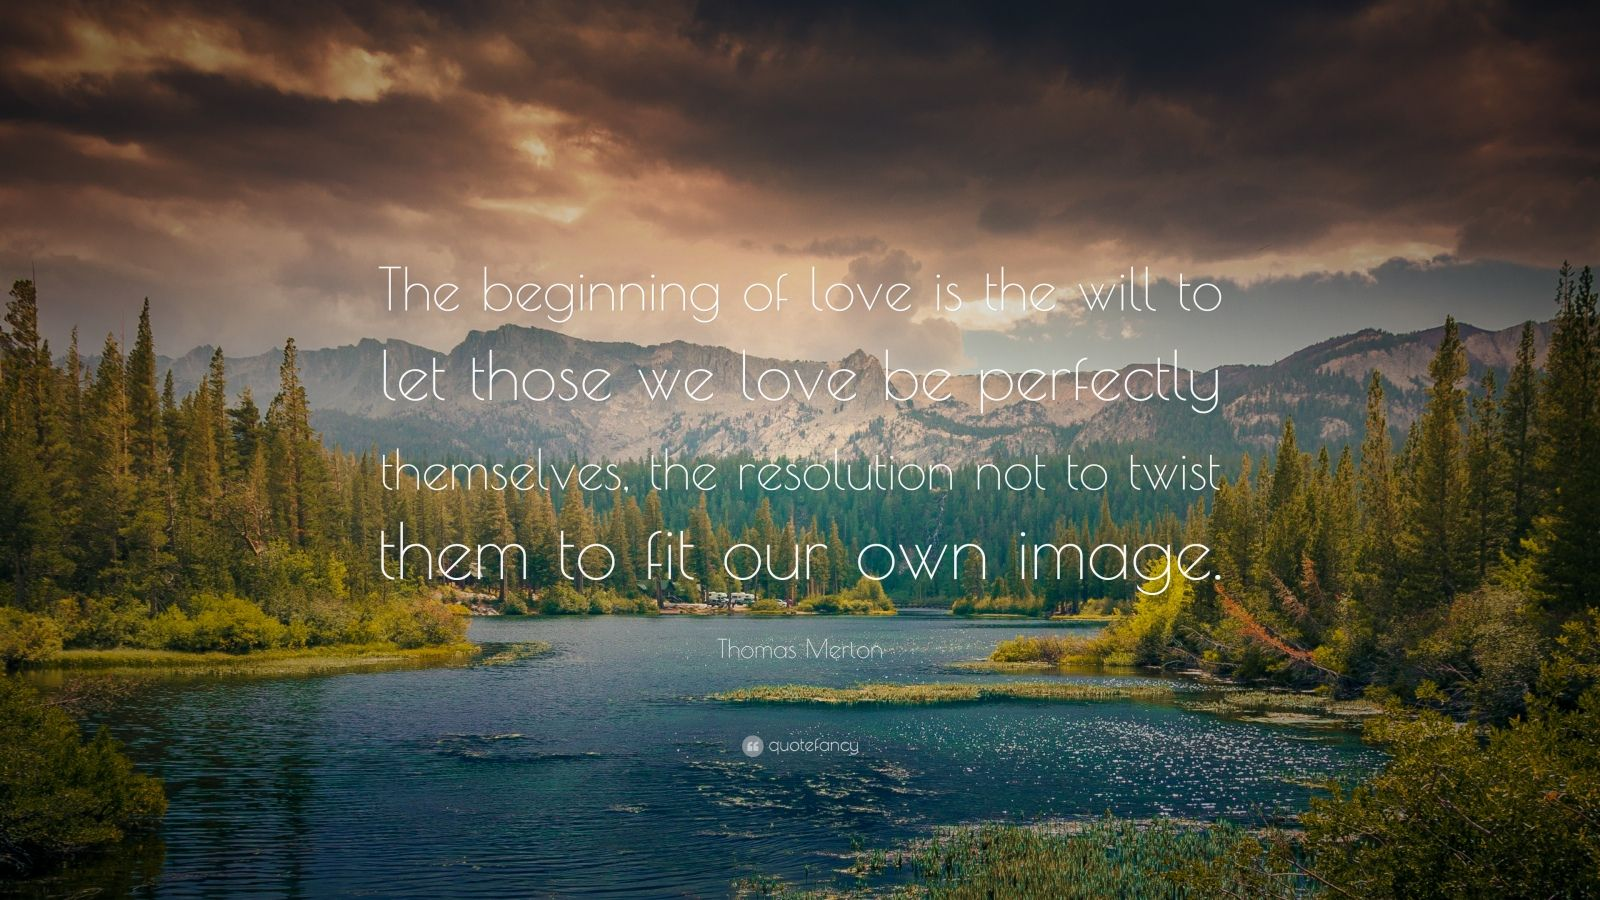 """Thomas Merton Quote: """"The beginning of love is the will to let those we love be perfectly themselves, the resolution not to twist them to fit our own image."""""""